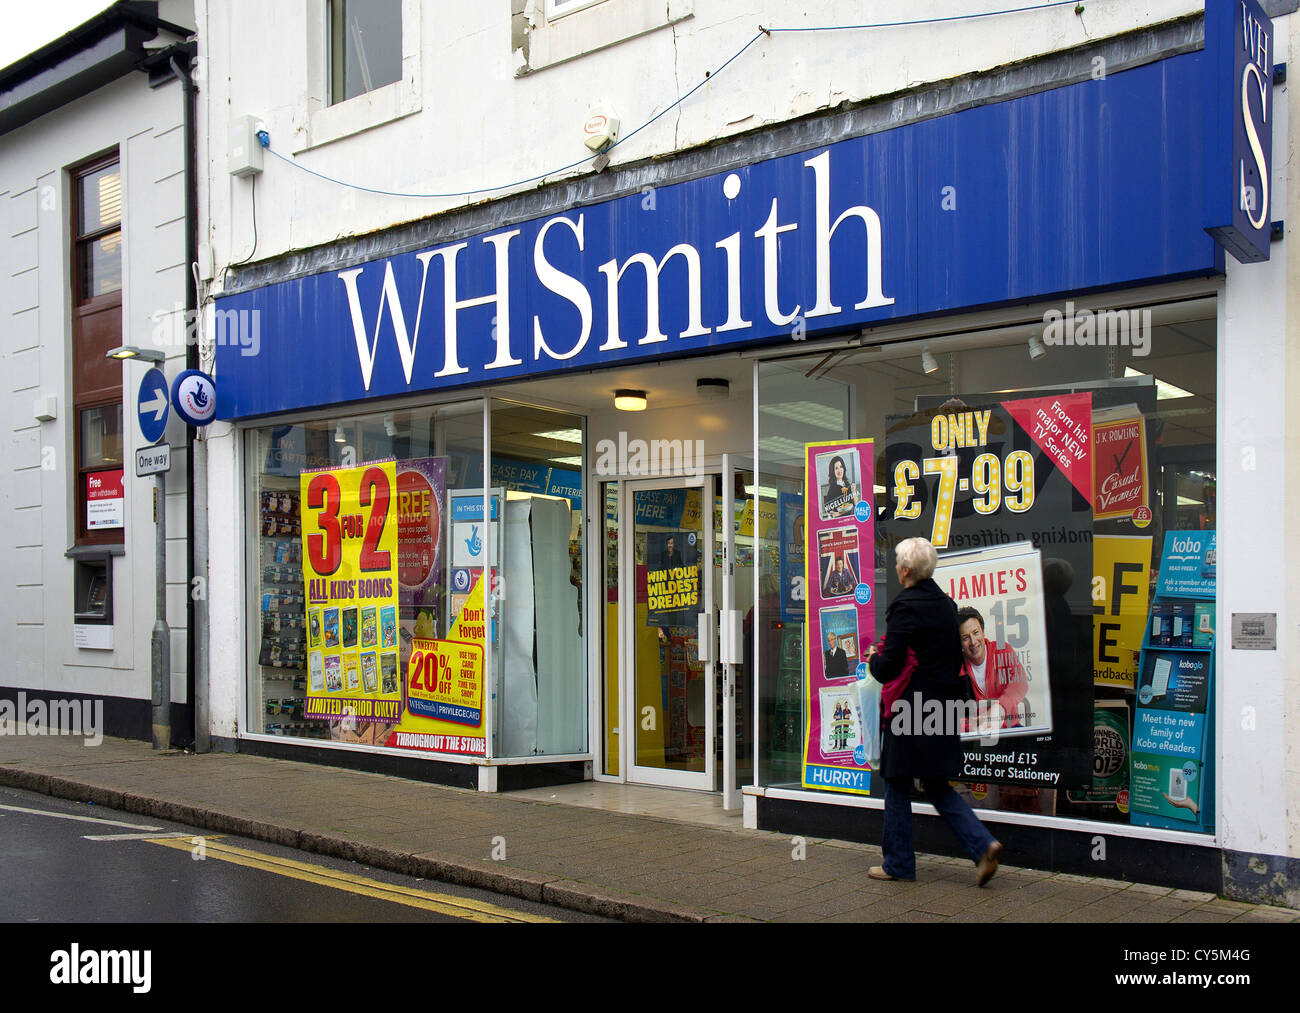 a WH Smith store in the UK - Stock Image